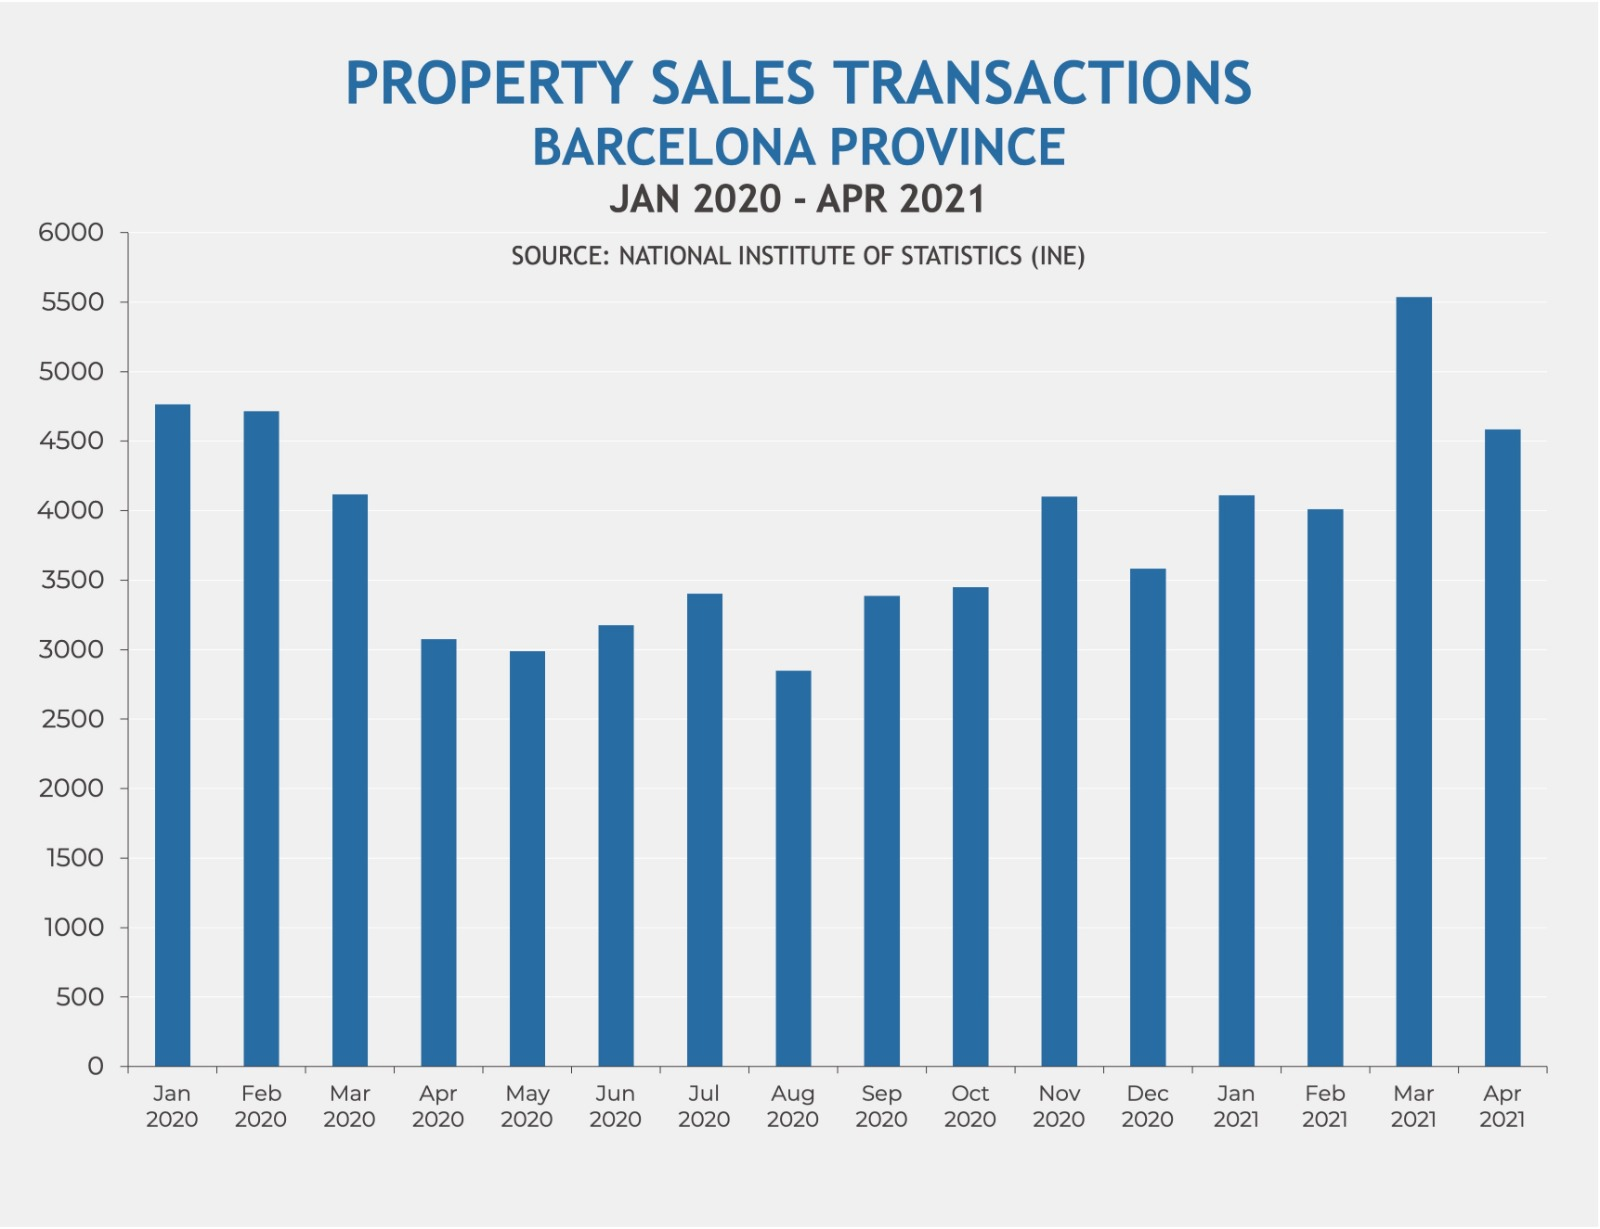 Property sales transactions in Barcelona